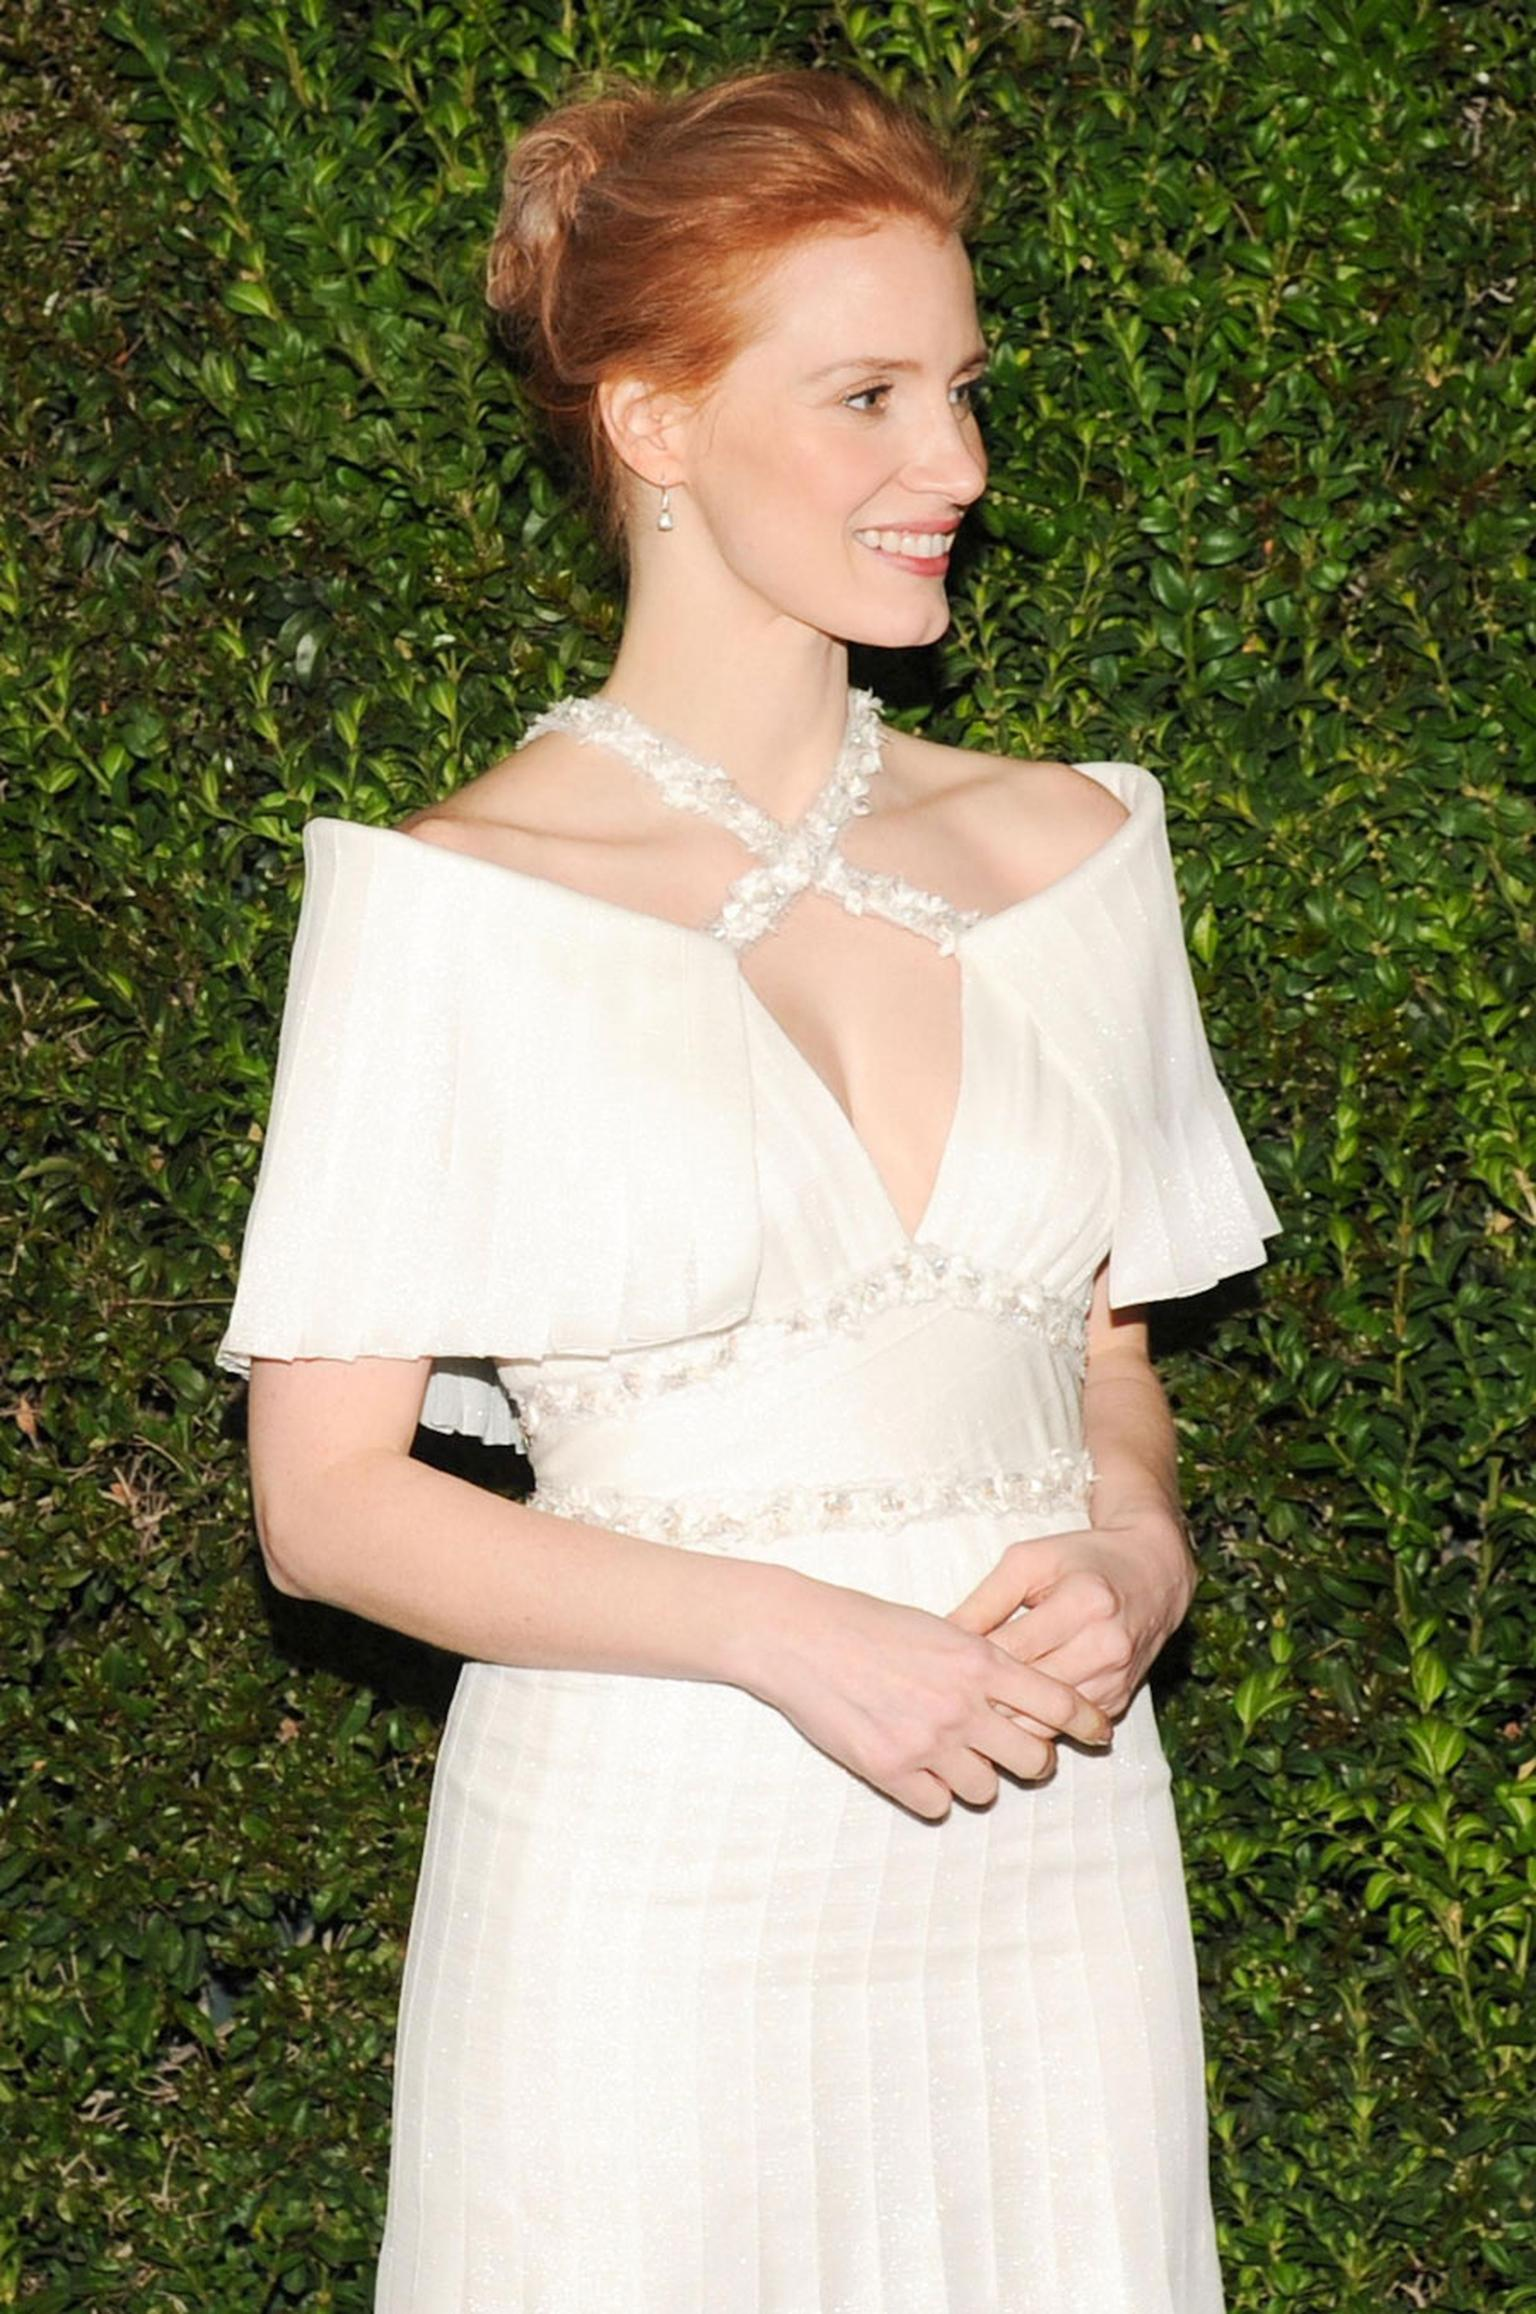 Jessica-Chastain-Chanel-and-Charles-Finch-Oscars-Dinner-23-fevrier-2013-ter.jpg